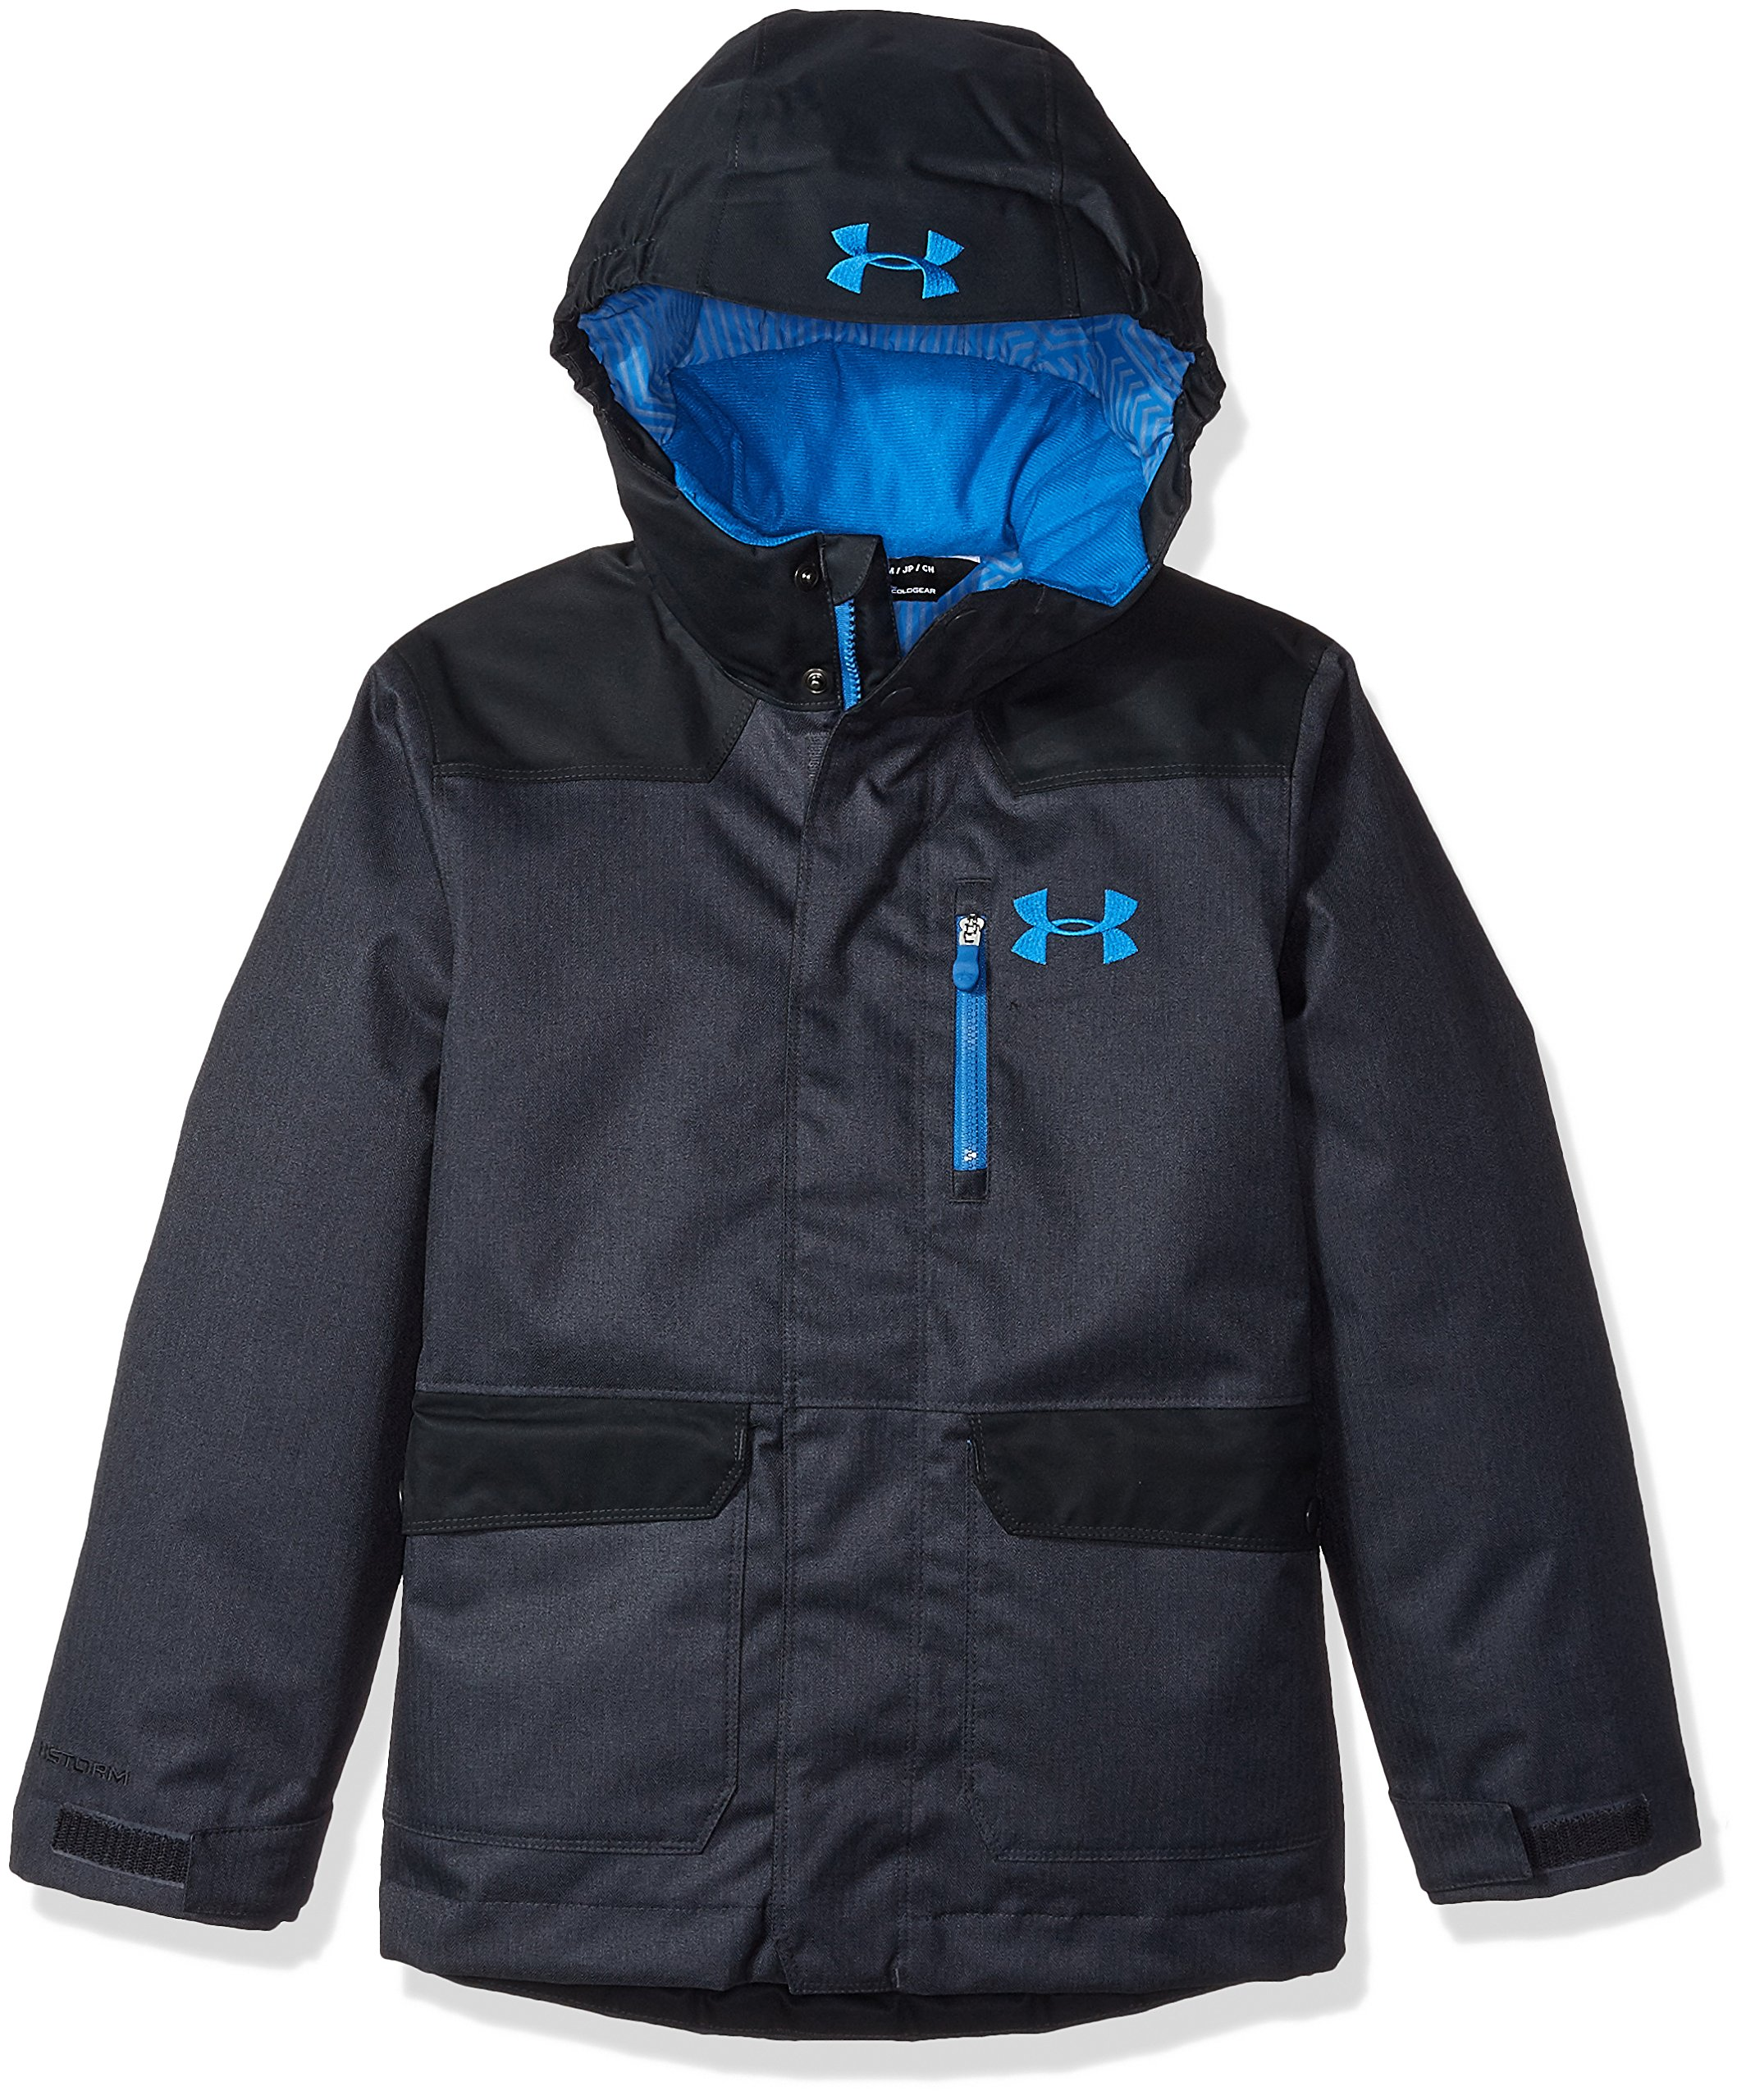 Under Armour Boys' ColdGear Reactor Yonders Parka, Anthracite/Cruise Blue, Youth Large